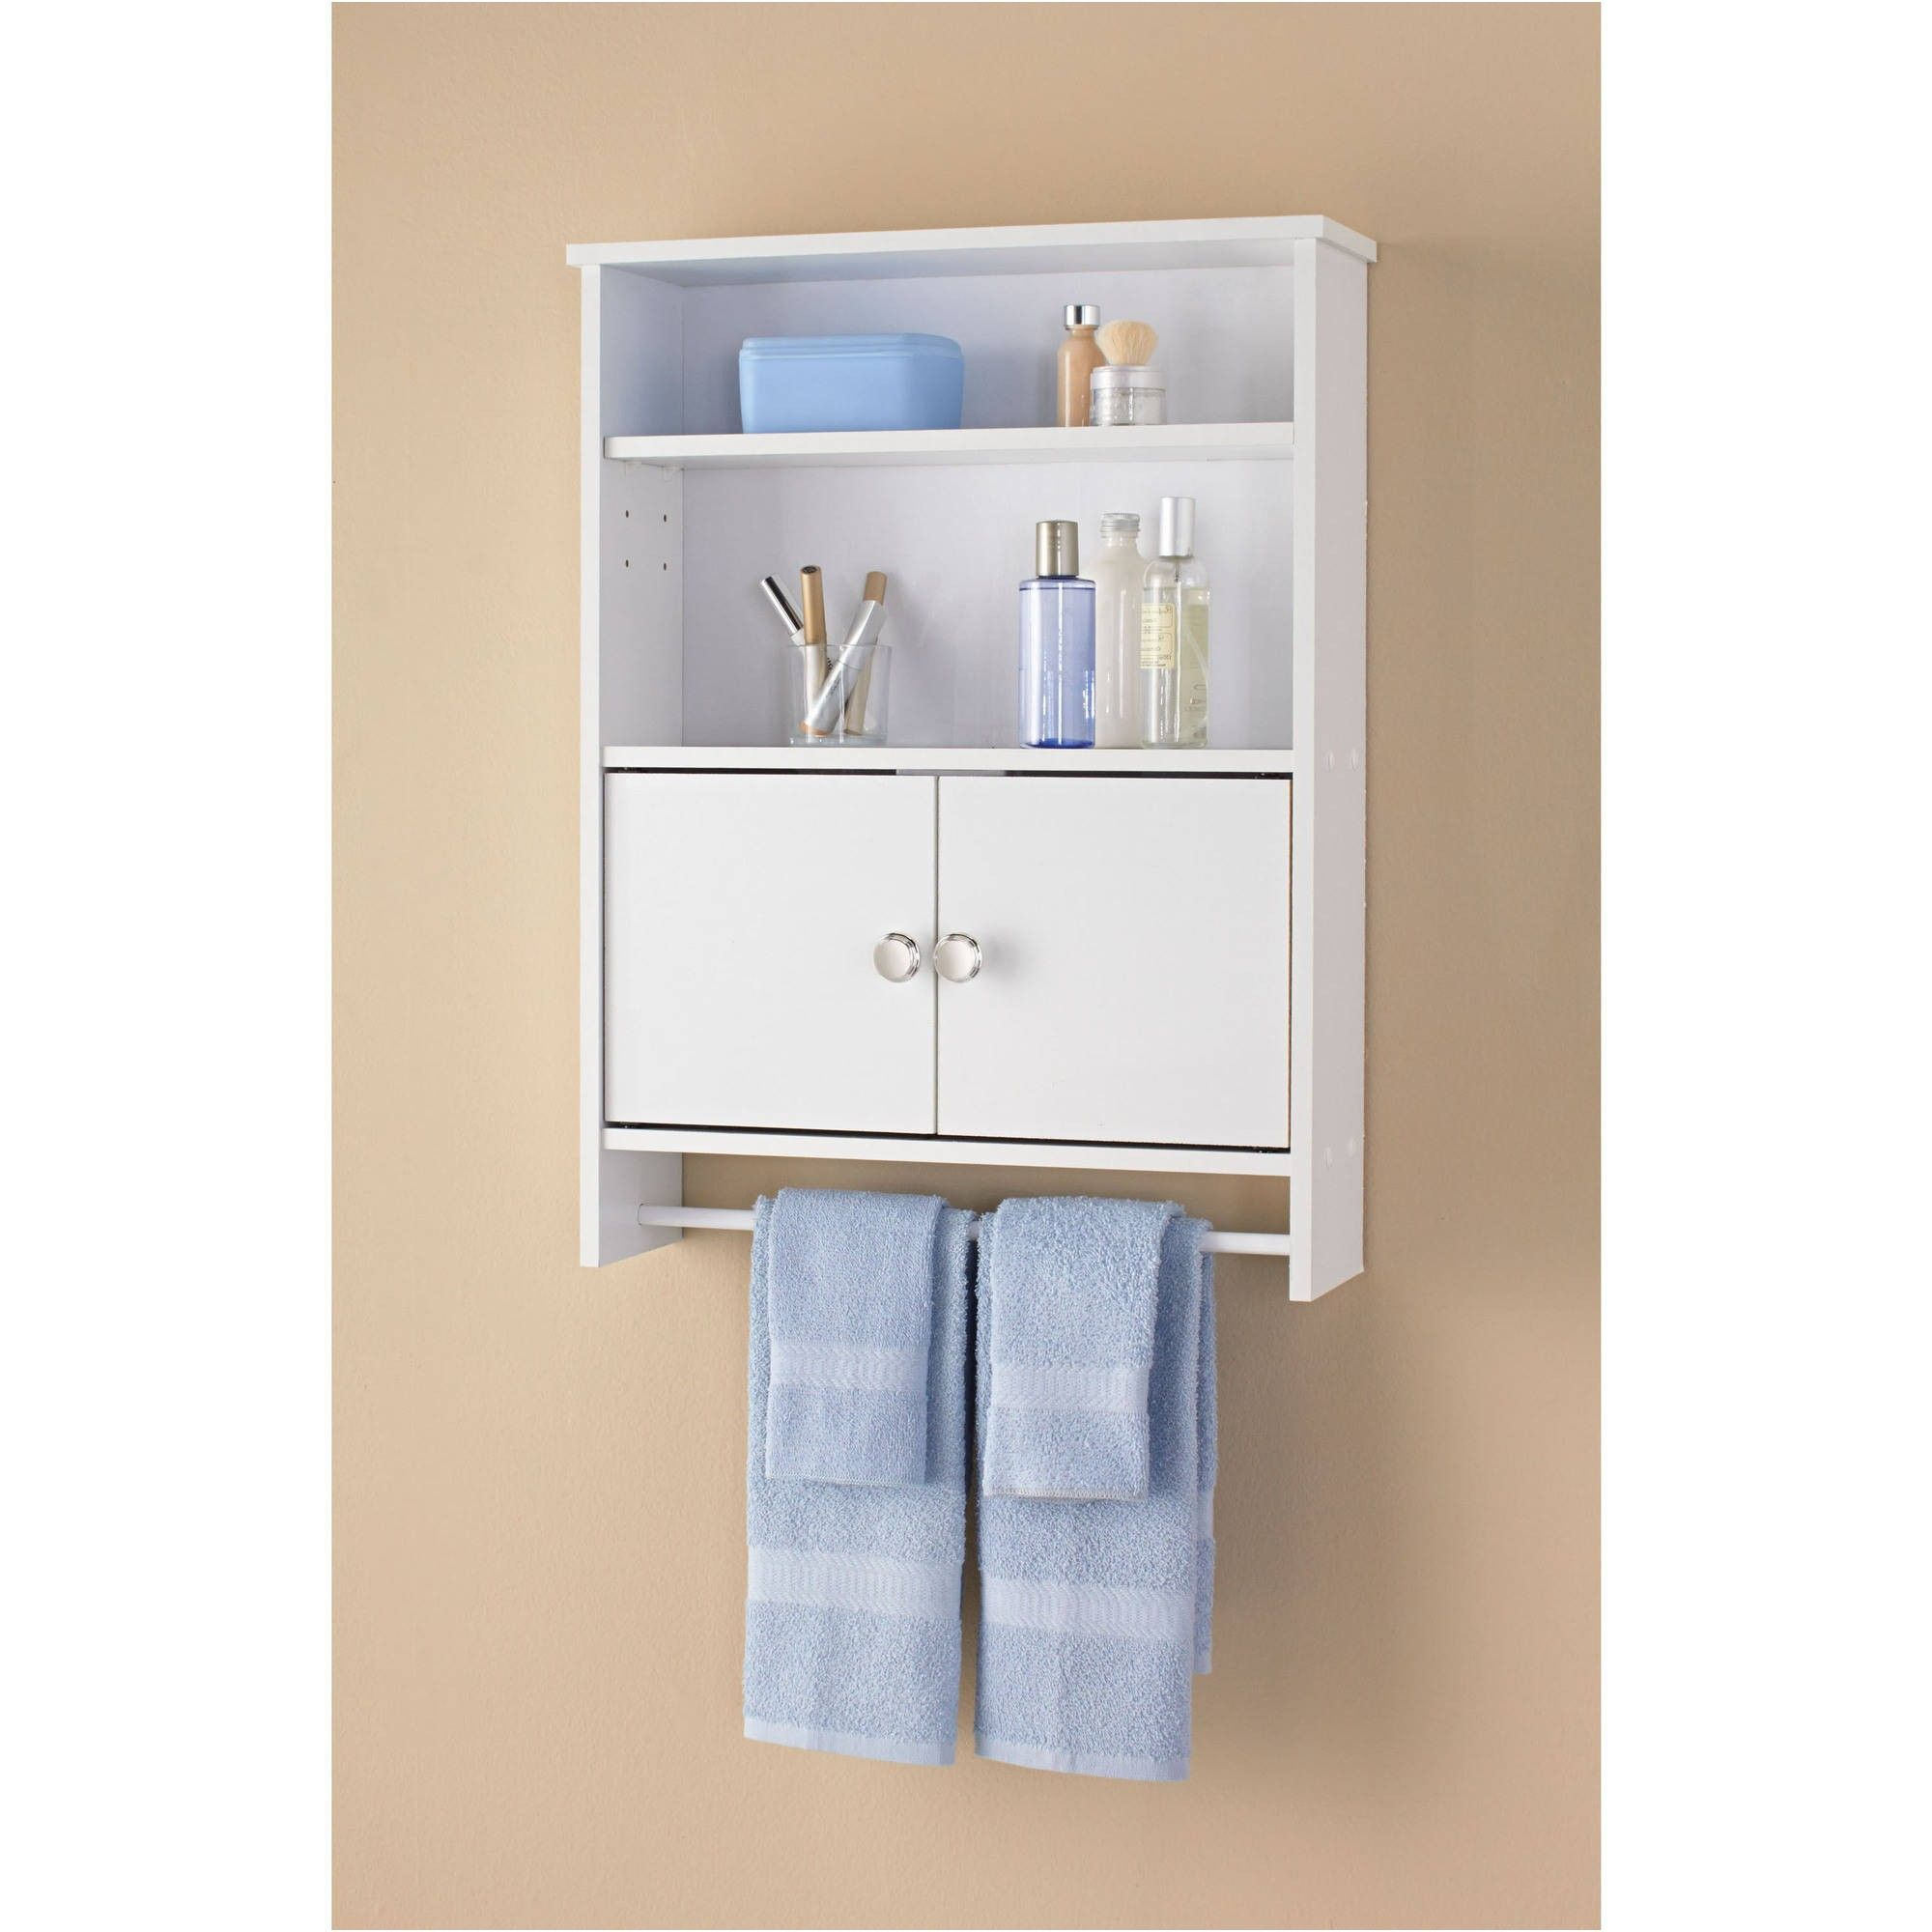 mainstays bathroom wall cabinet mainstays 2 door wood wall cabinet white walmart from 19379